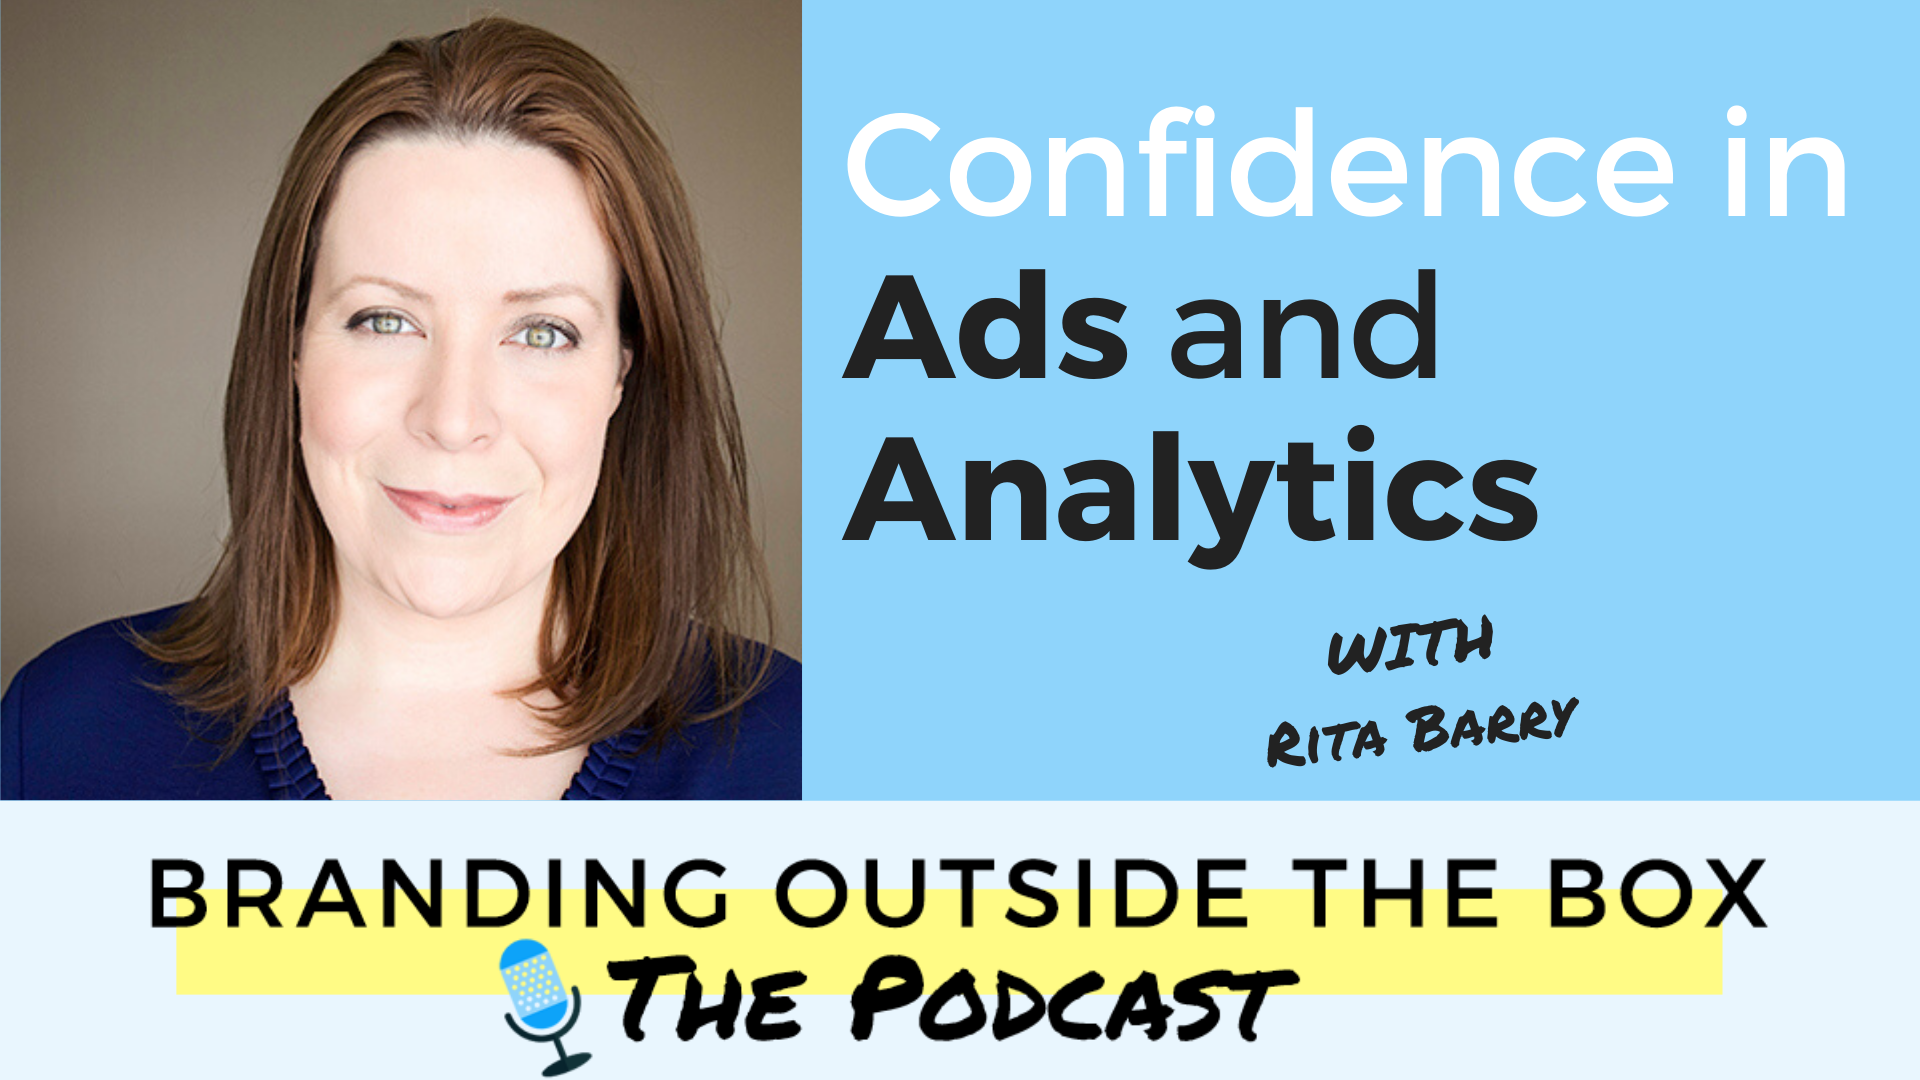 Confidence in Ads and Analytics